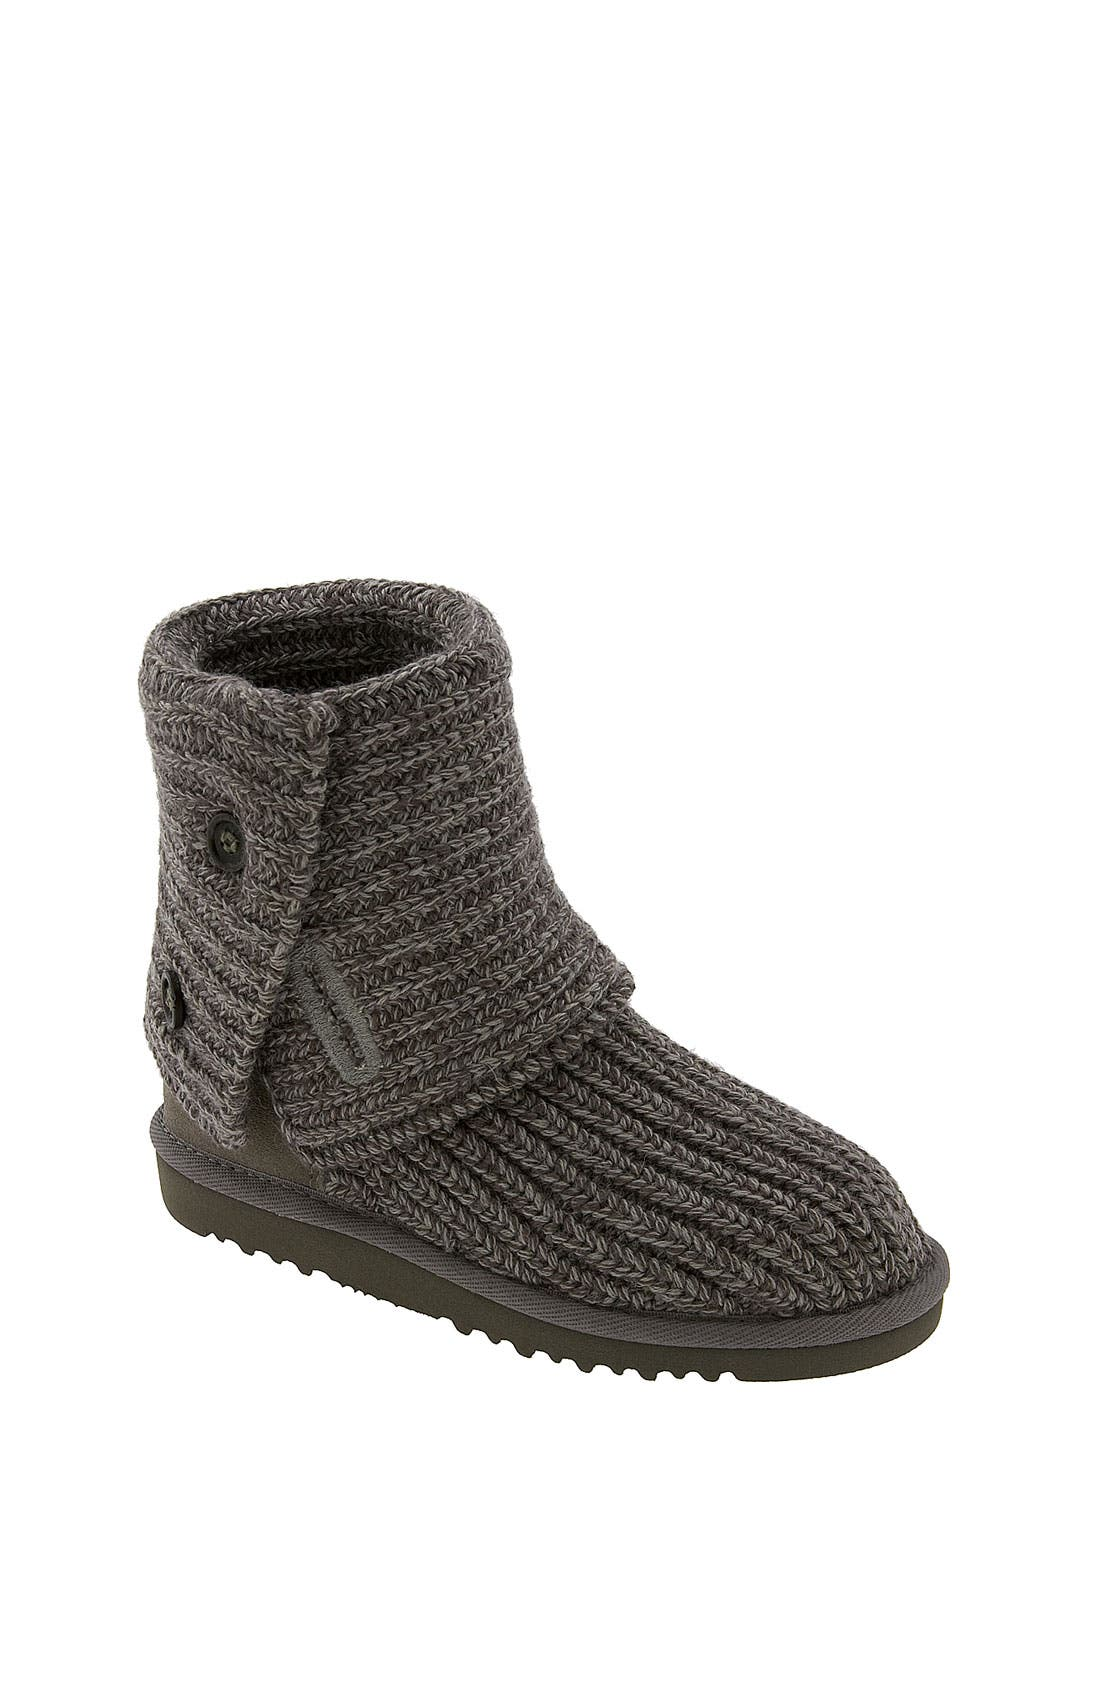 Alternate Image 2  - UGG® 'Cardy' Crochet Boot (Toddler, Little Kid & Big Kid)